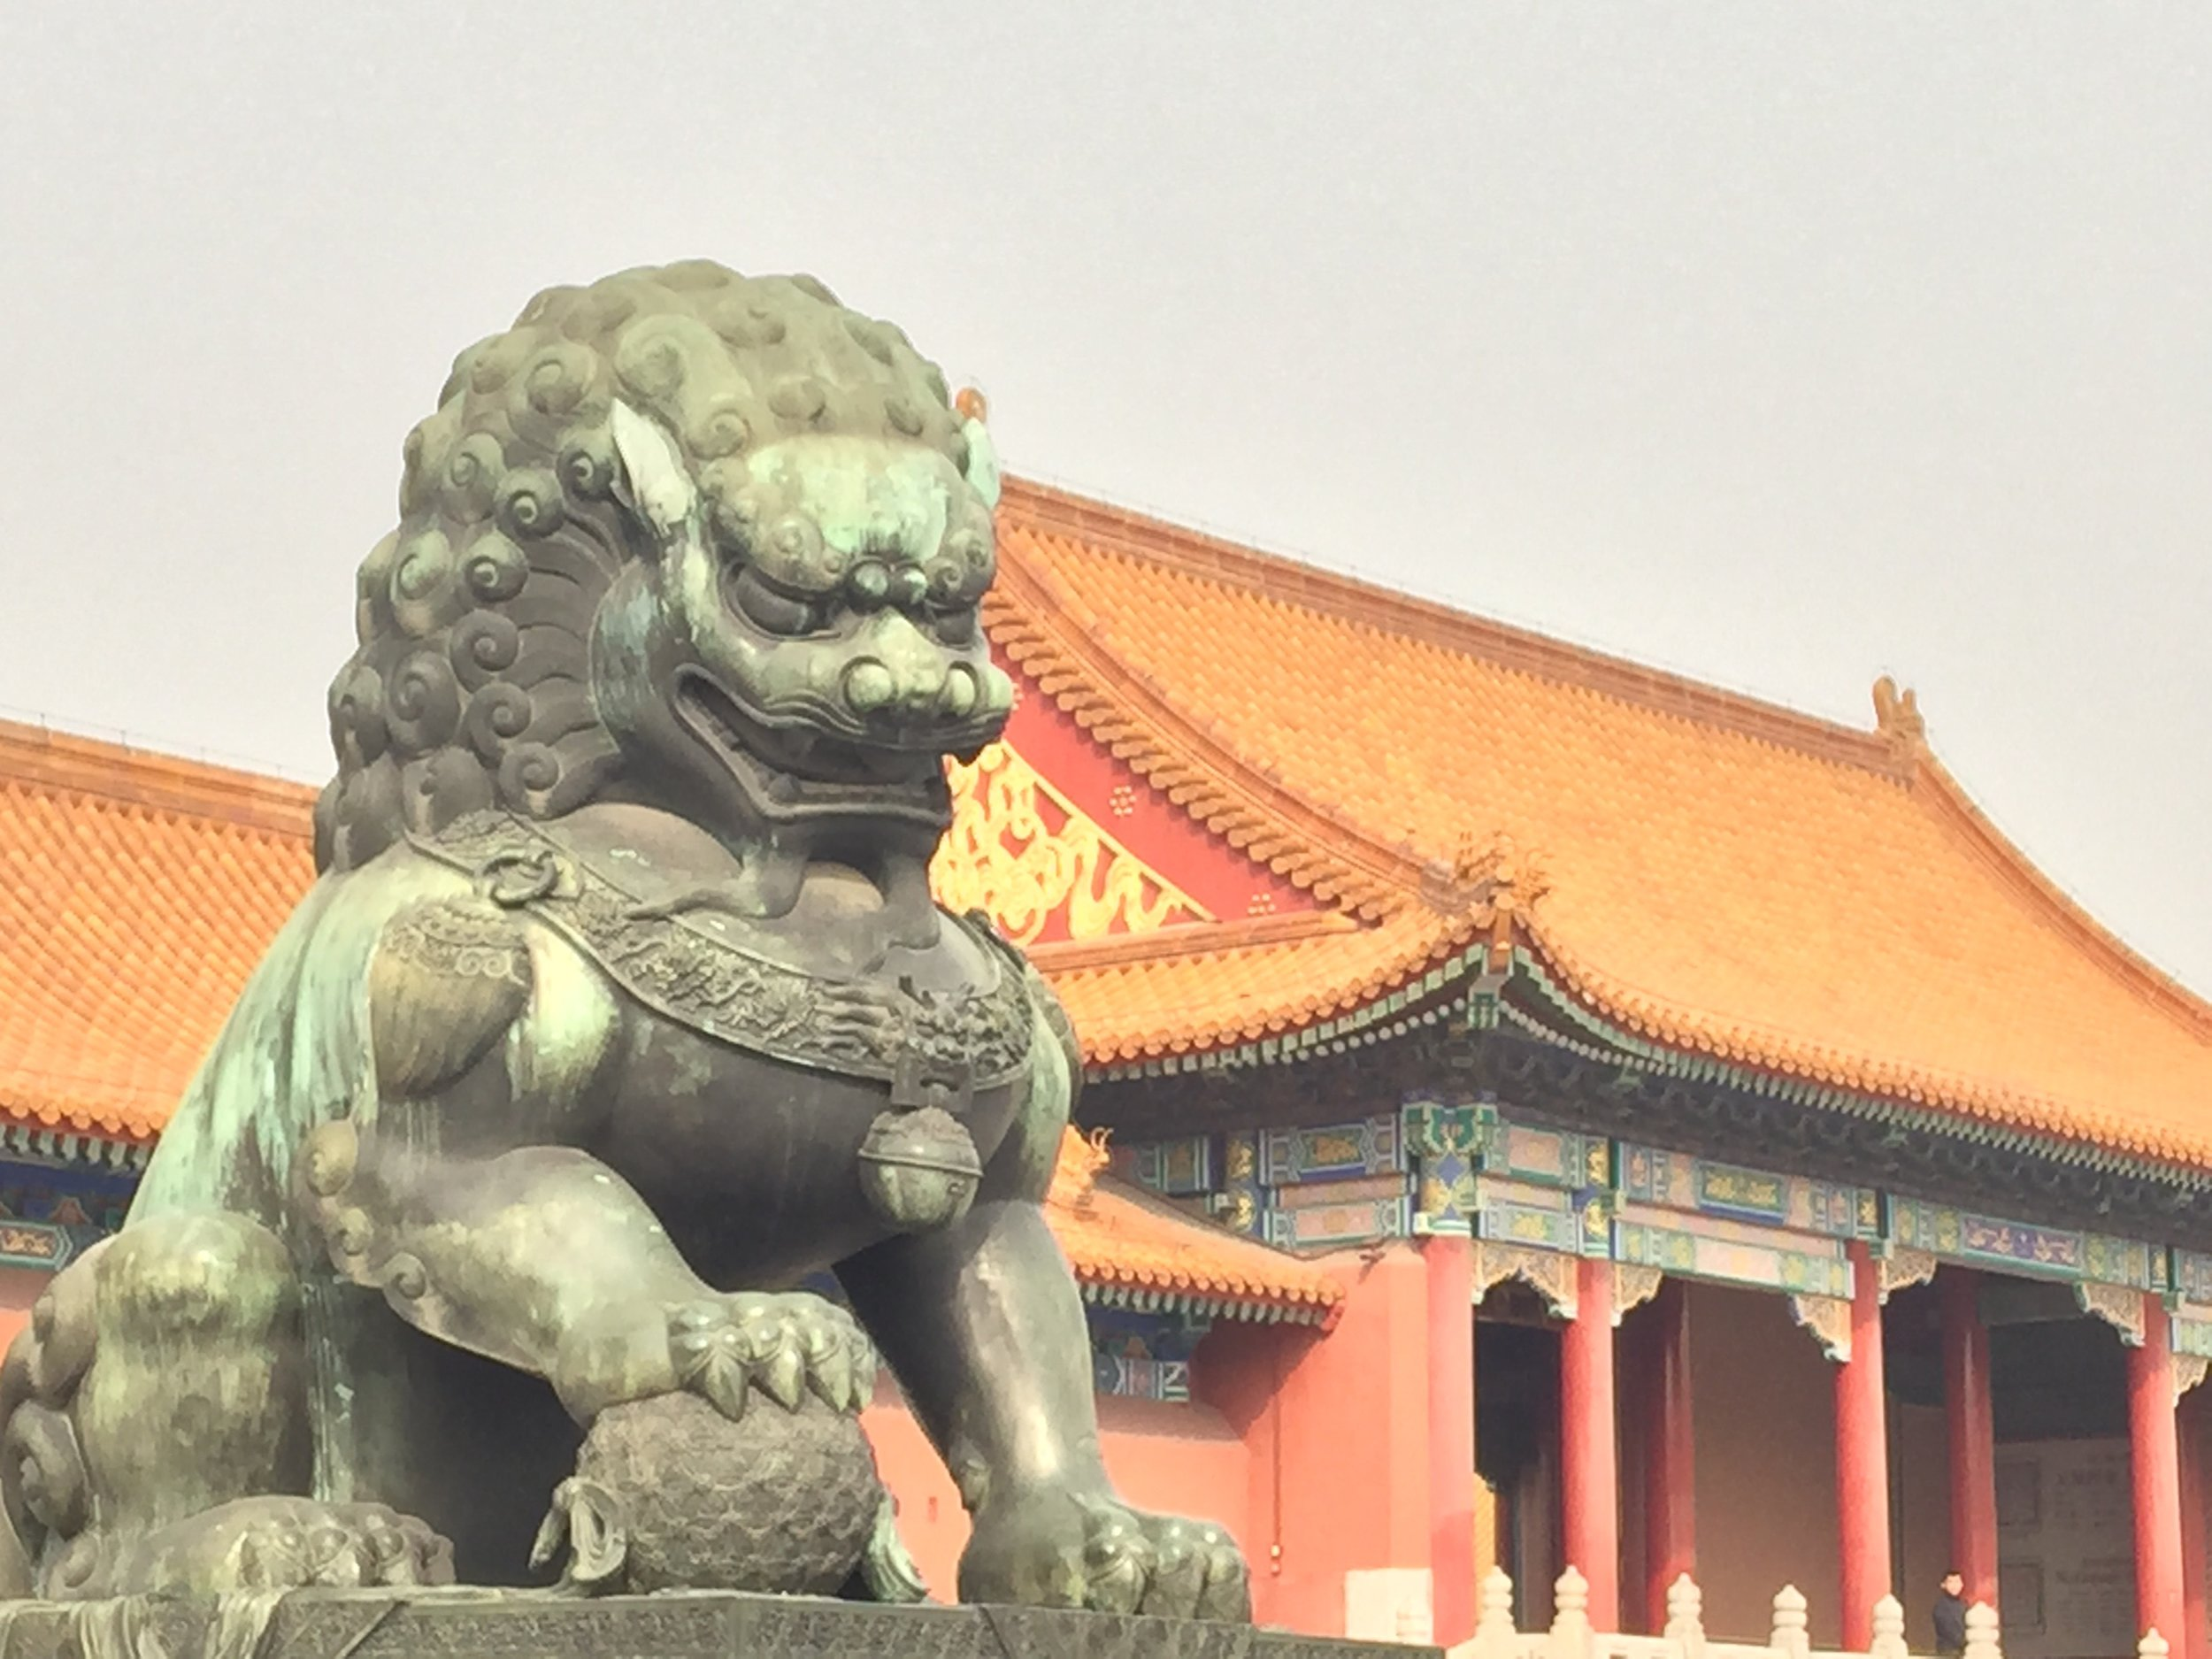 The main entrance to the central palace complex and the famous stone lion